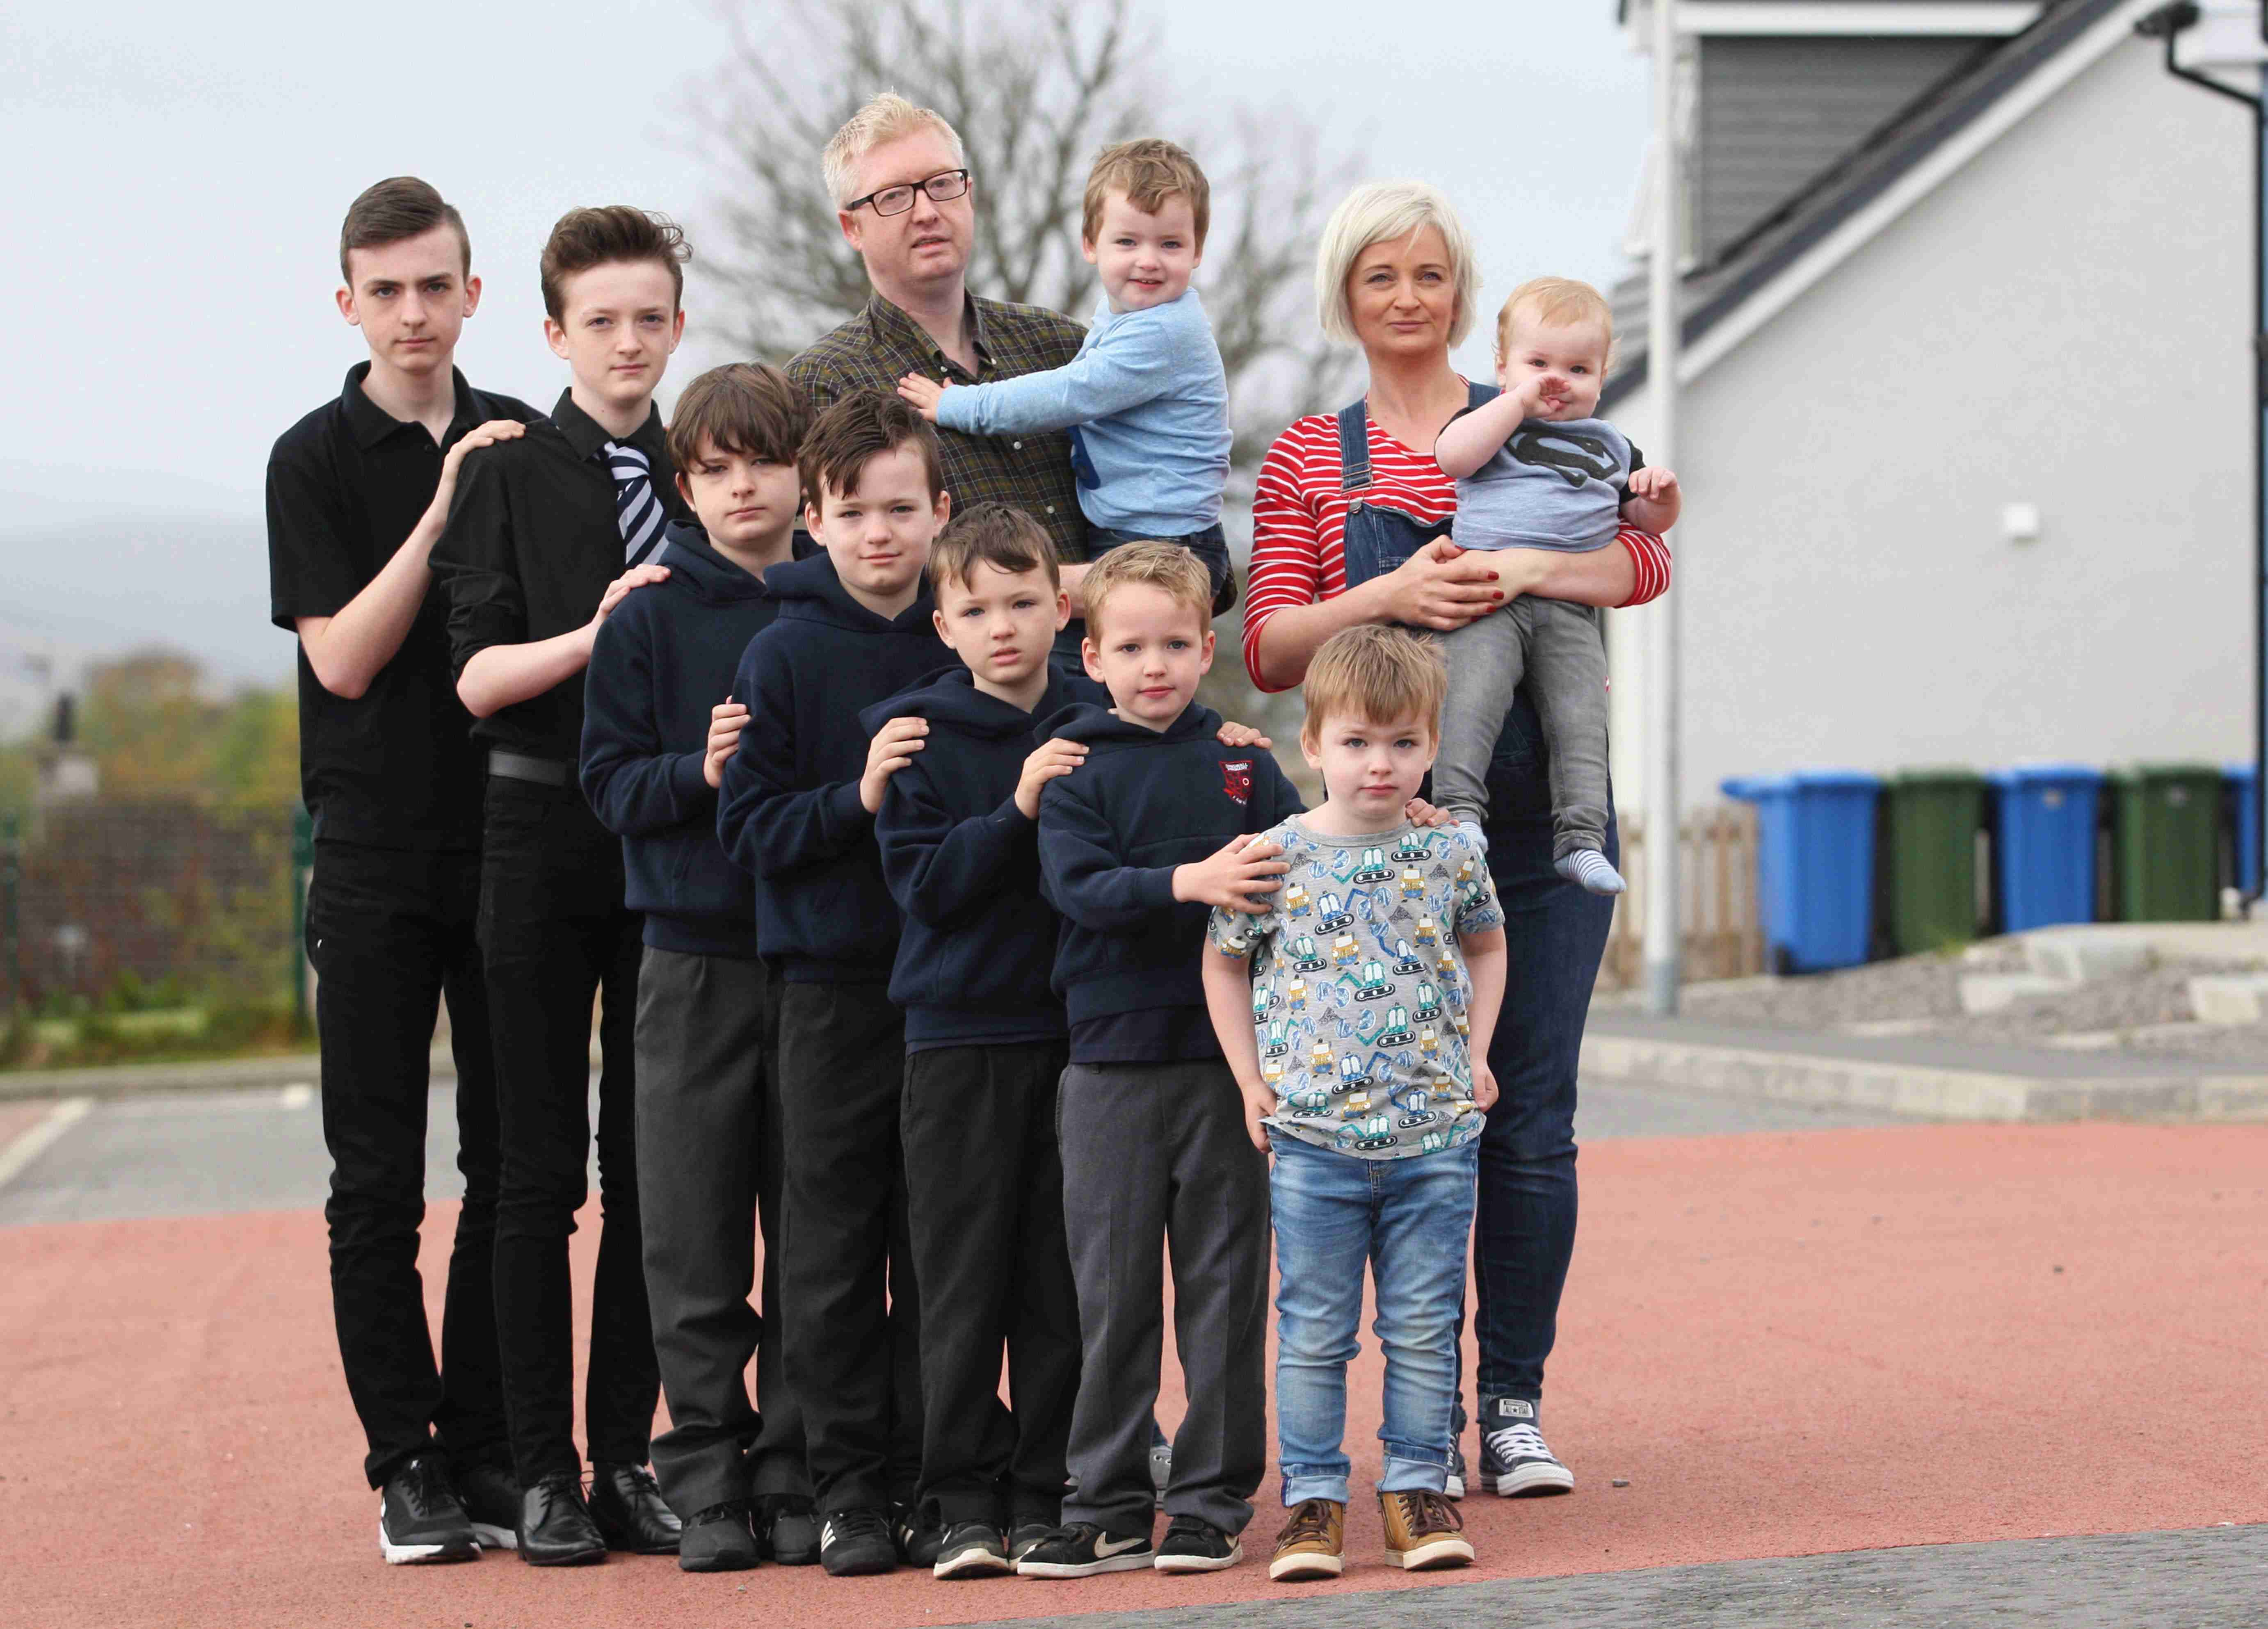 Mum of nine boys is pregnant again with her TENTH son - and she reveals they go through 84 pints of milk every week